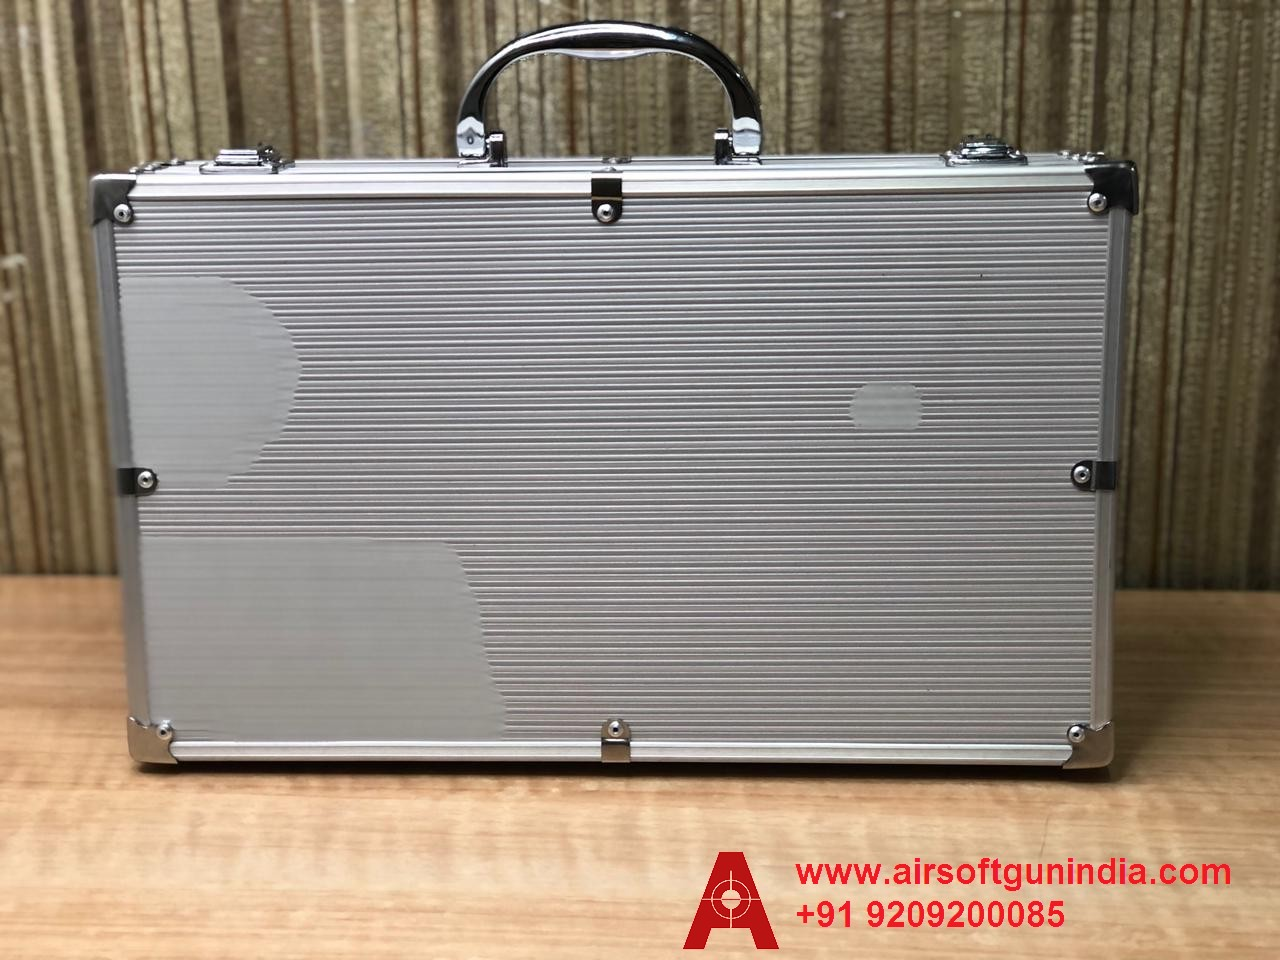 Customized Gun Case For Schofield 6 Co2 PELLETS Revolver By Airsoft Gun India